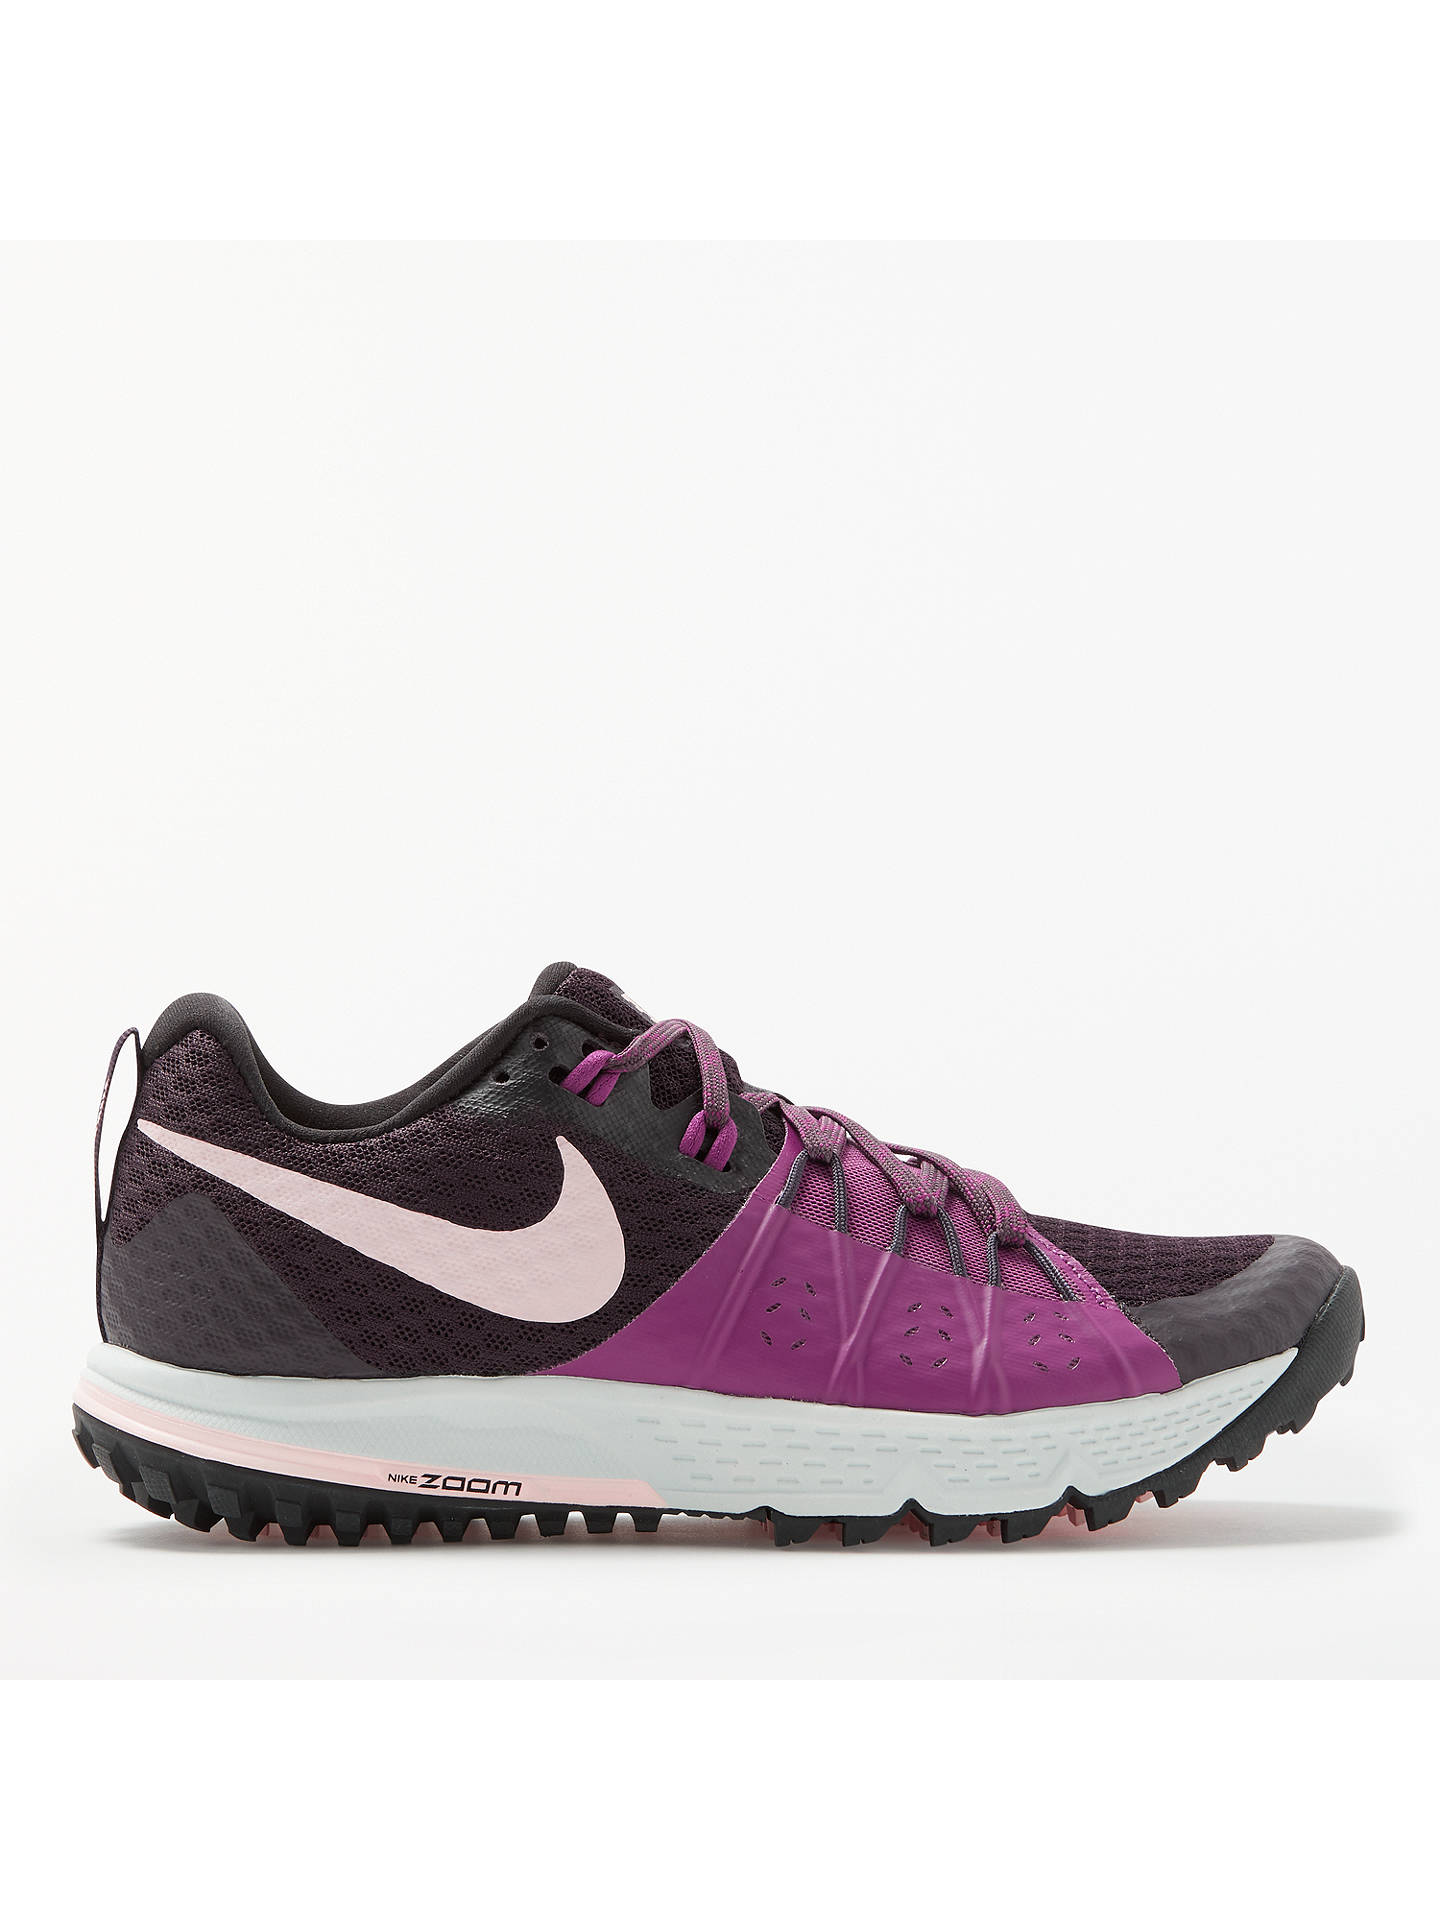 6c4d8924d13 Nike Air Zoom Wildhorse 4 Women s Running Shoes at John Lewis   Partners